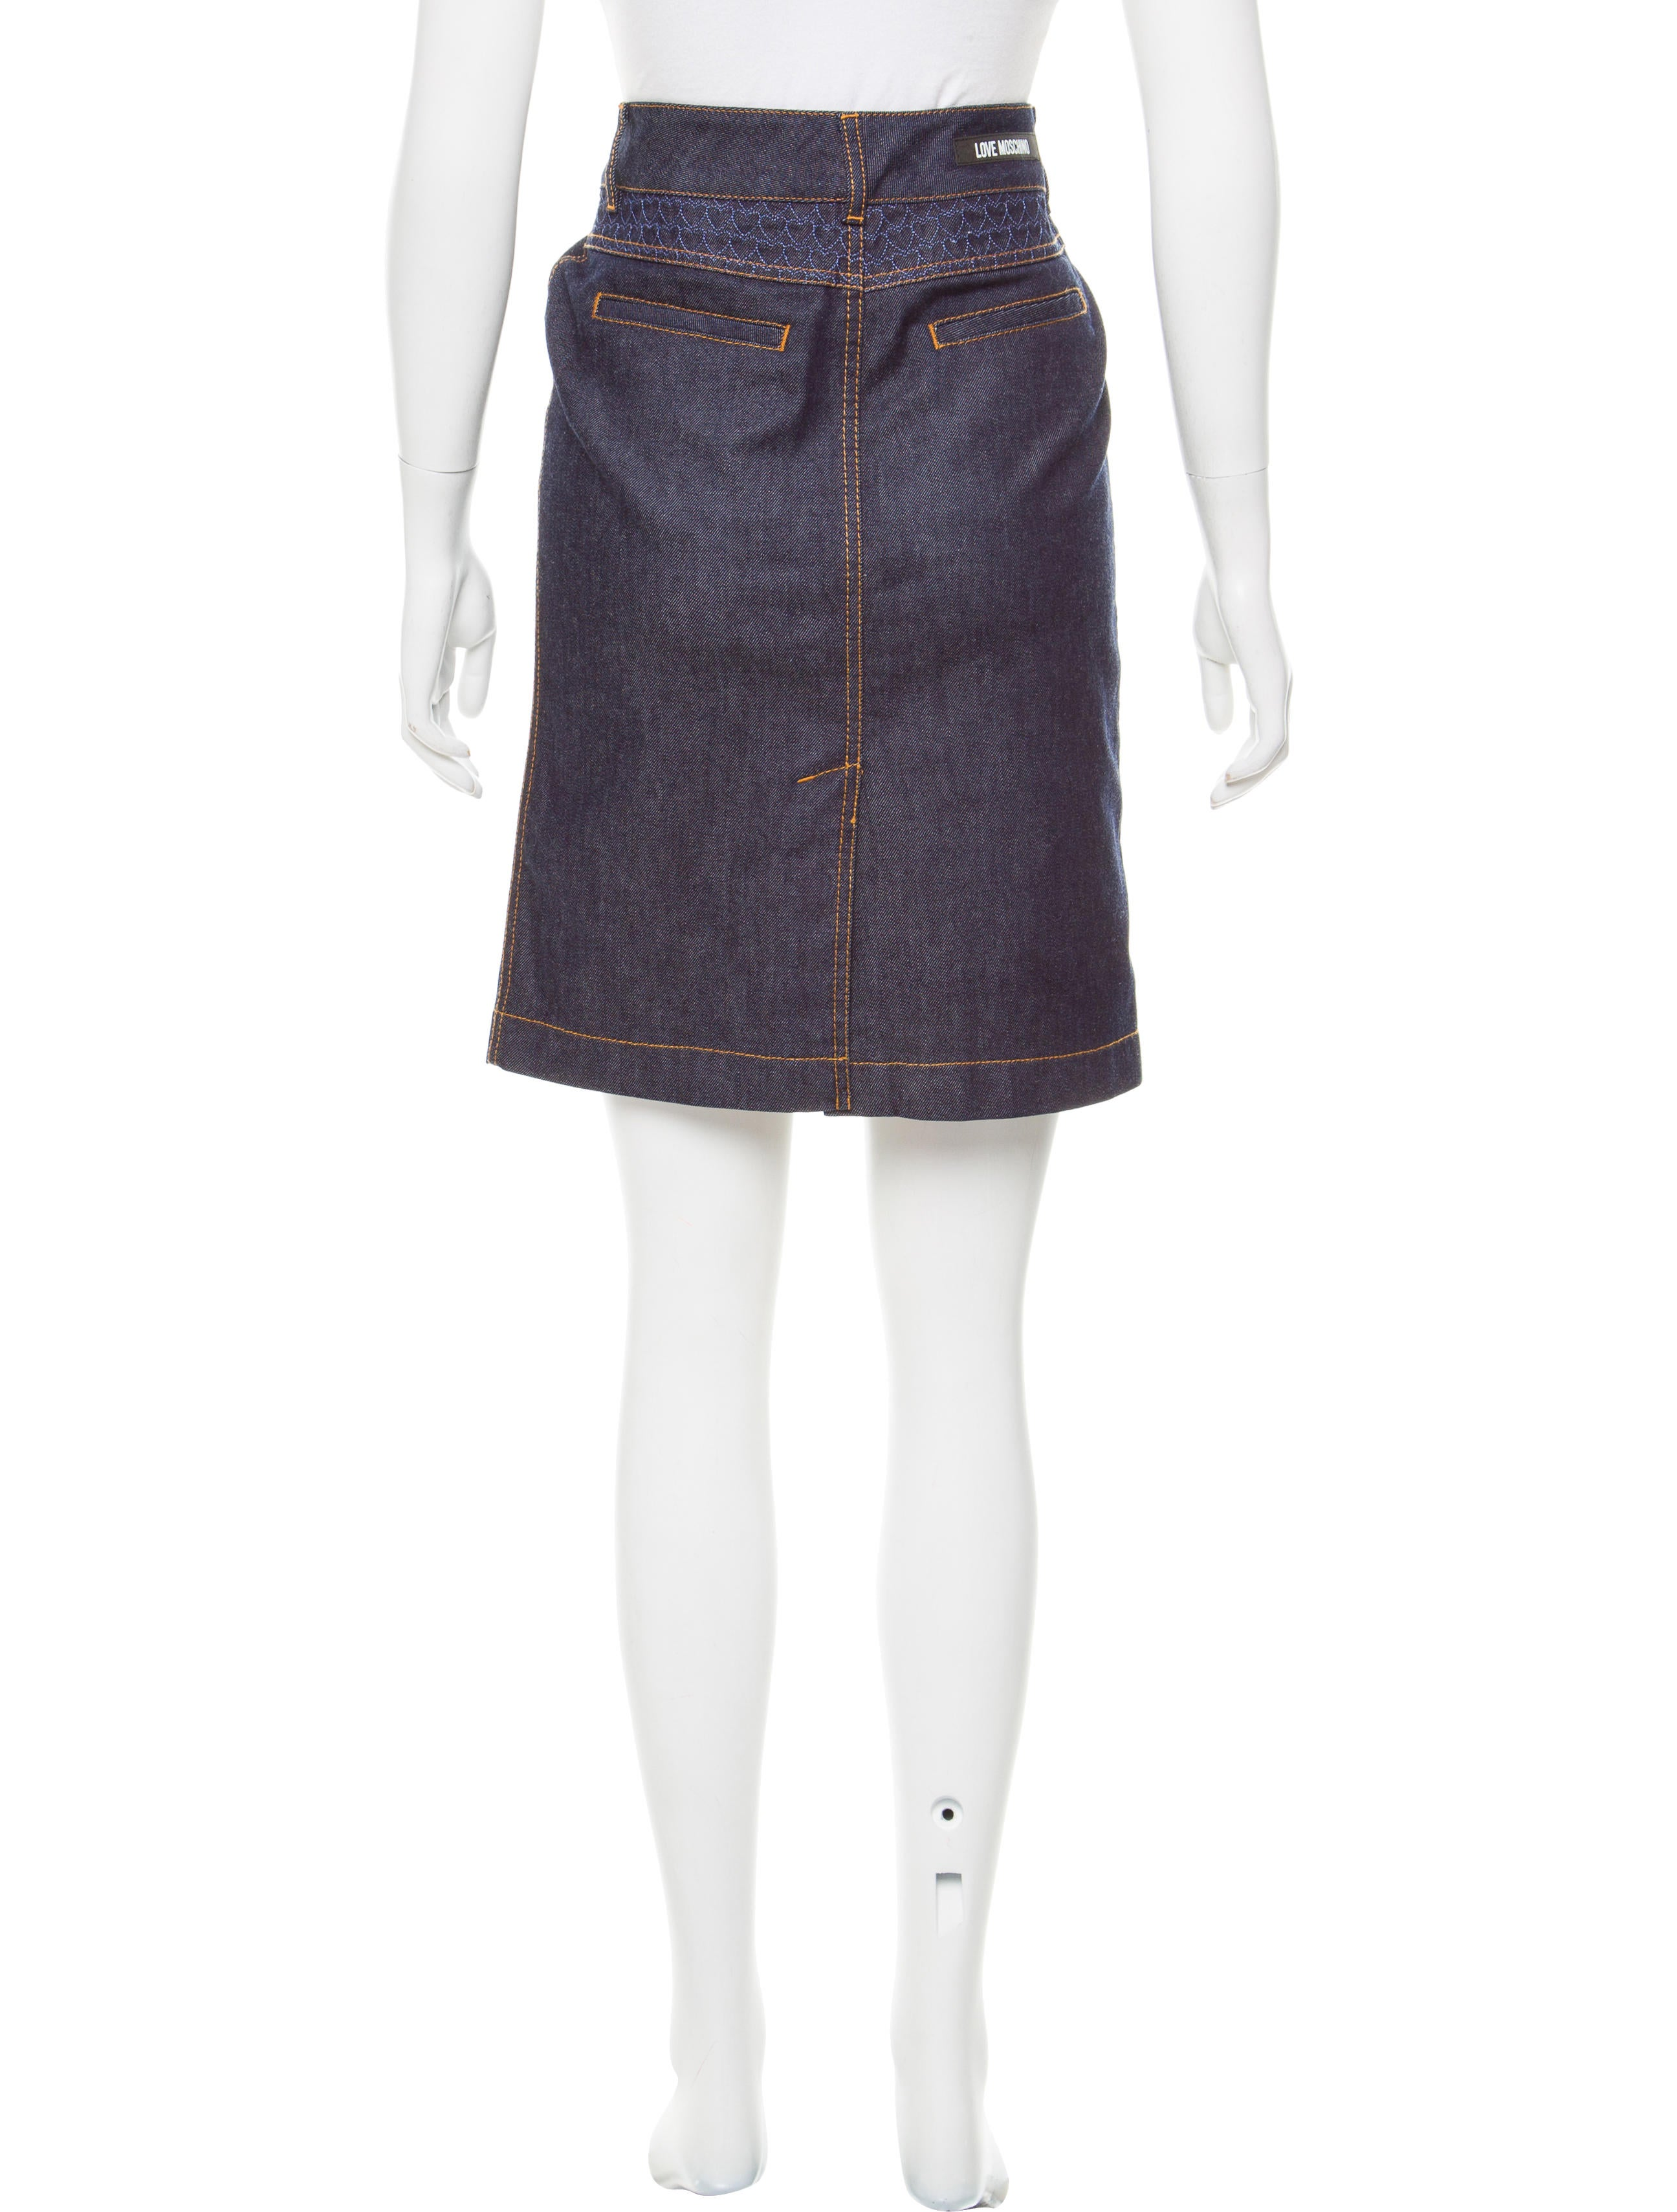 Free shipping BOTH ways on denim skirts knee length, from our vast selection of styles. Fast delivery, and 24/7/ real-person service with a smile. Click or call